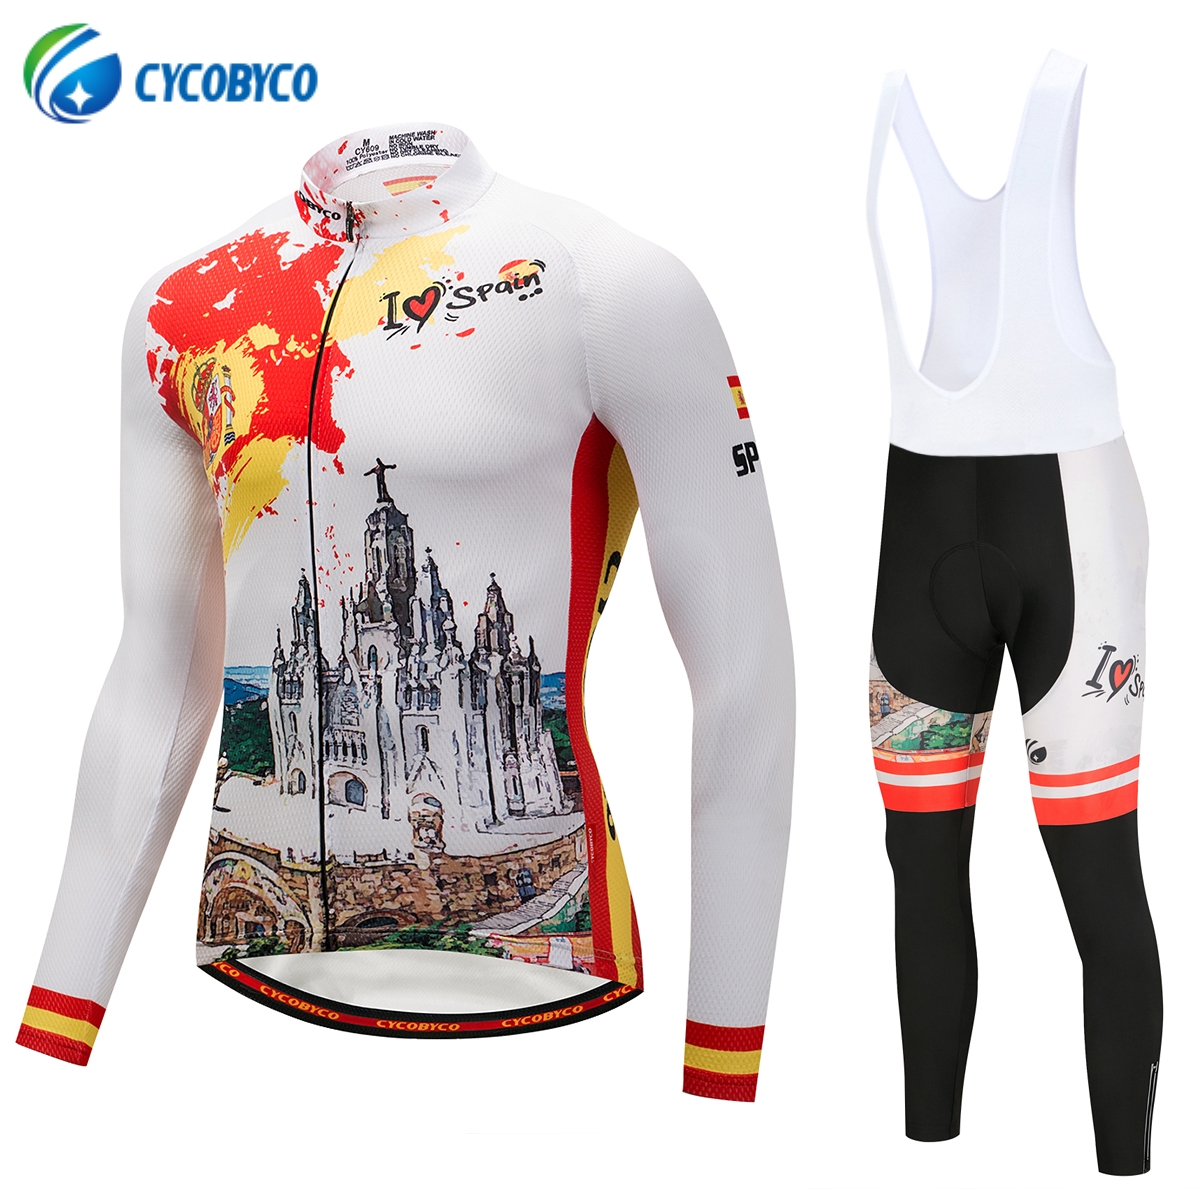 Cycobyco Long Sleeve Cycling Jersey Sets MTB Bicycle Clothing Mans Racing Bike Wear Quick dry Maillot Ropa Ciclismo Spain Style x tiger 2017 cycling jersey sets long sleeve mountain bike clothes wear maillot ropa ciclismo quick dry racing bicycle clothing